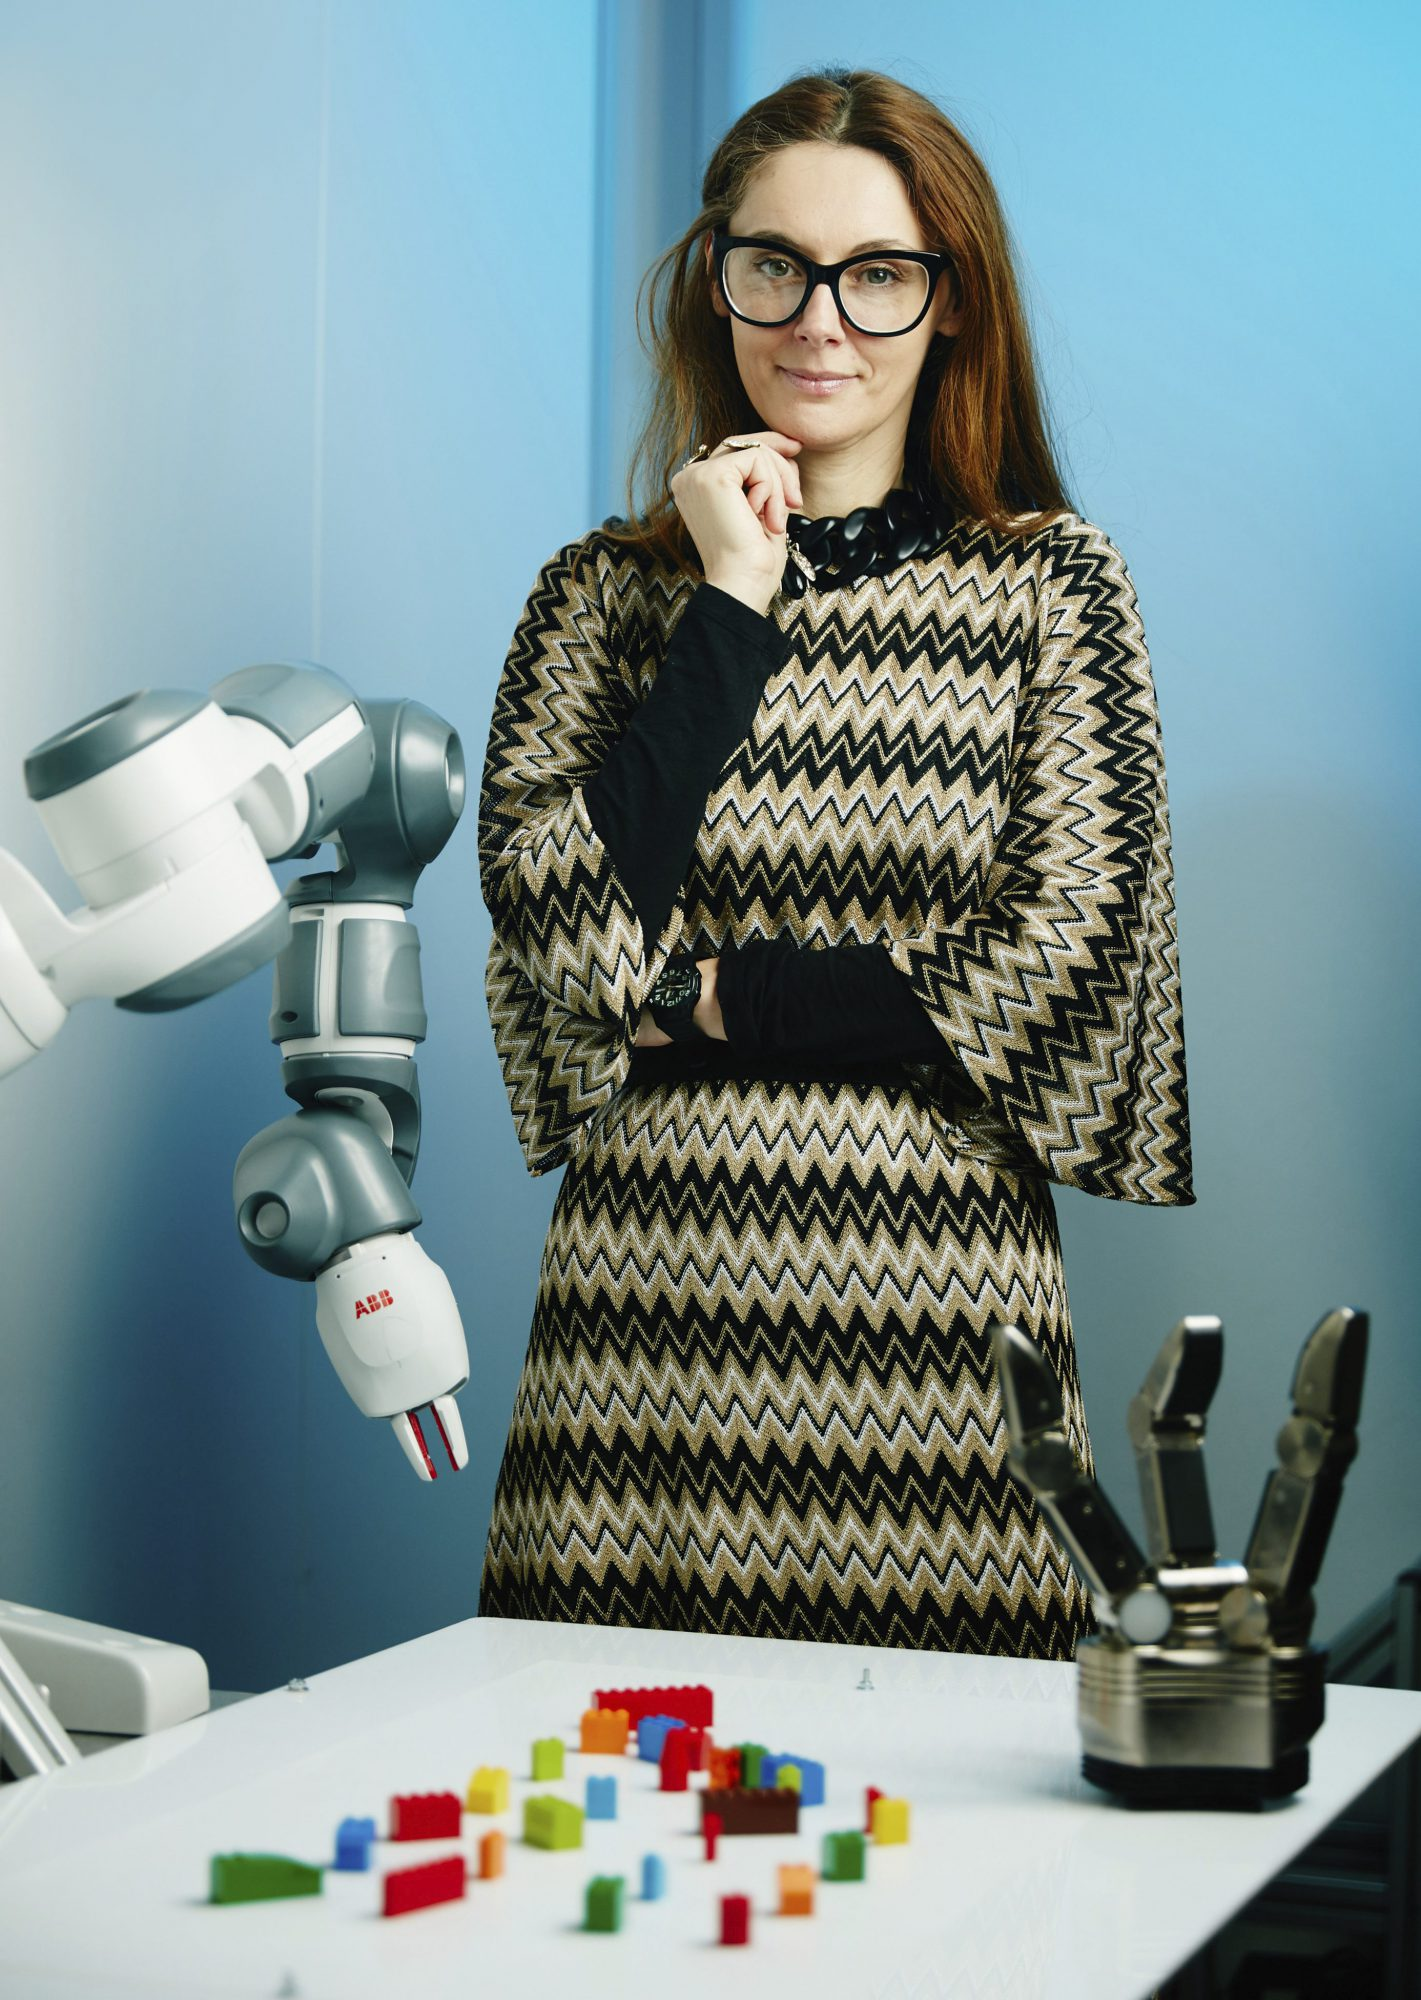 Danica Kragic envisions more automation in industrial settings to help with heavy, dirty and dangerous tasks.